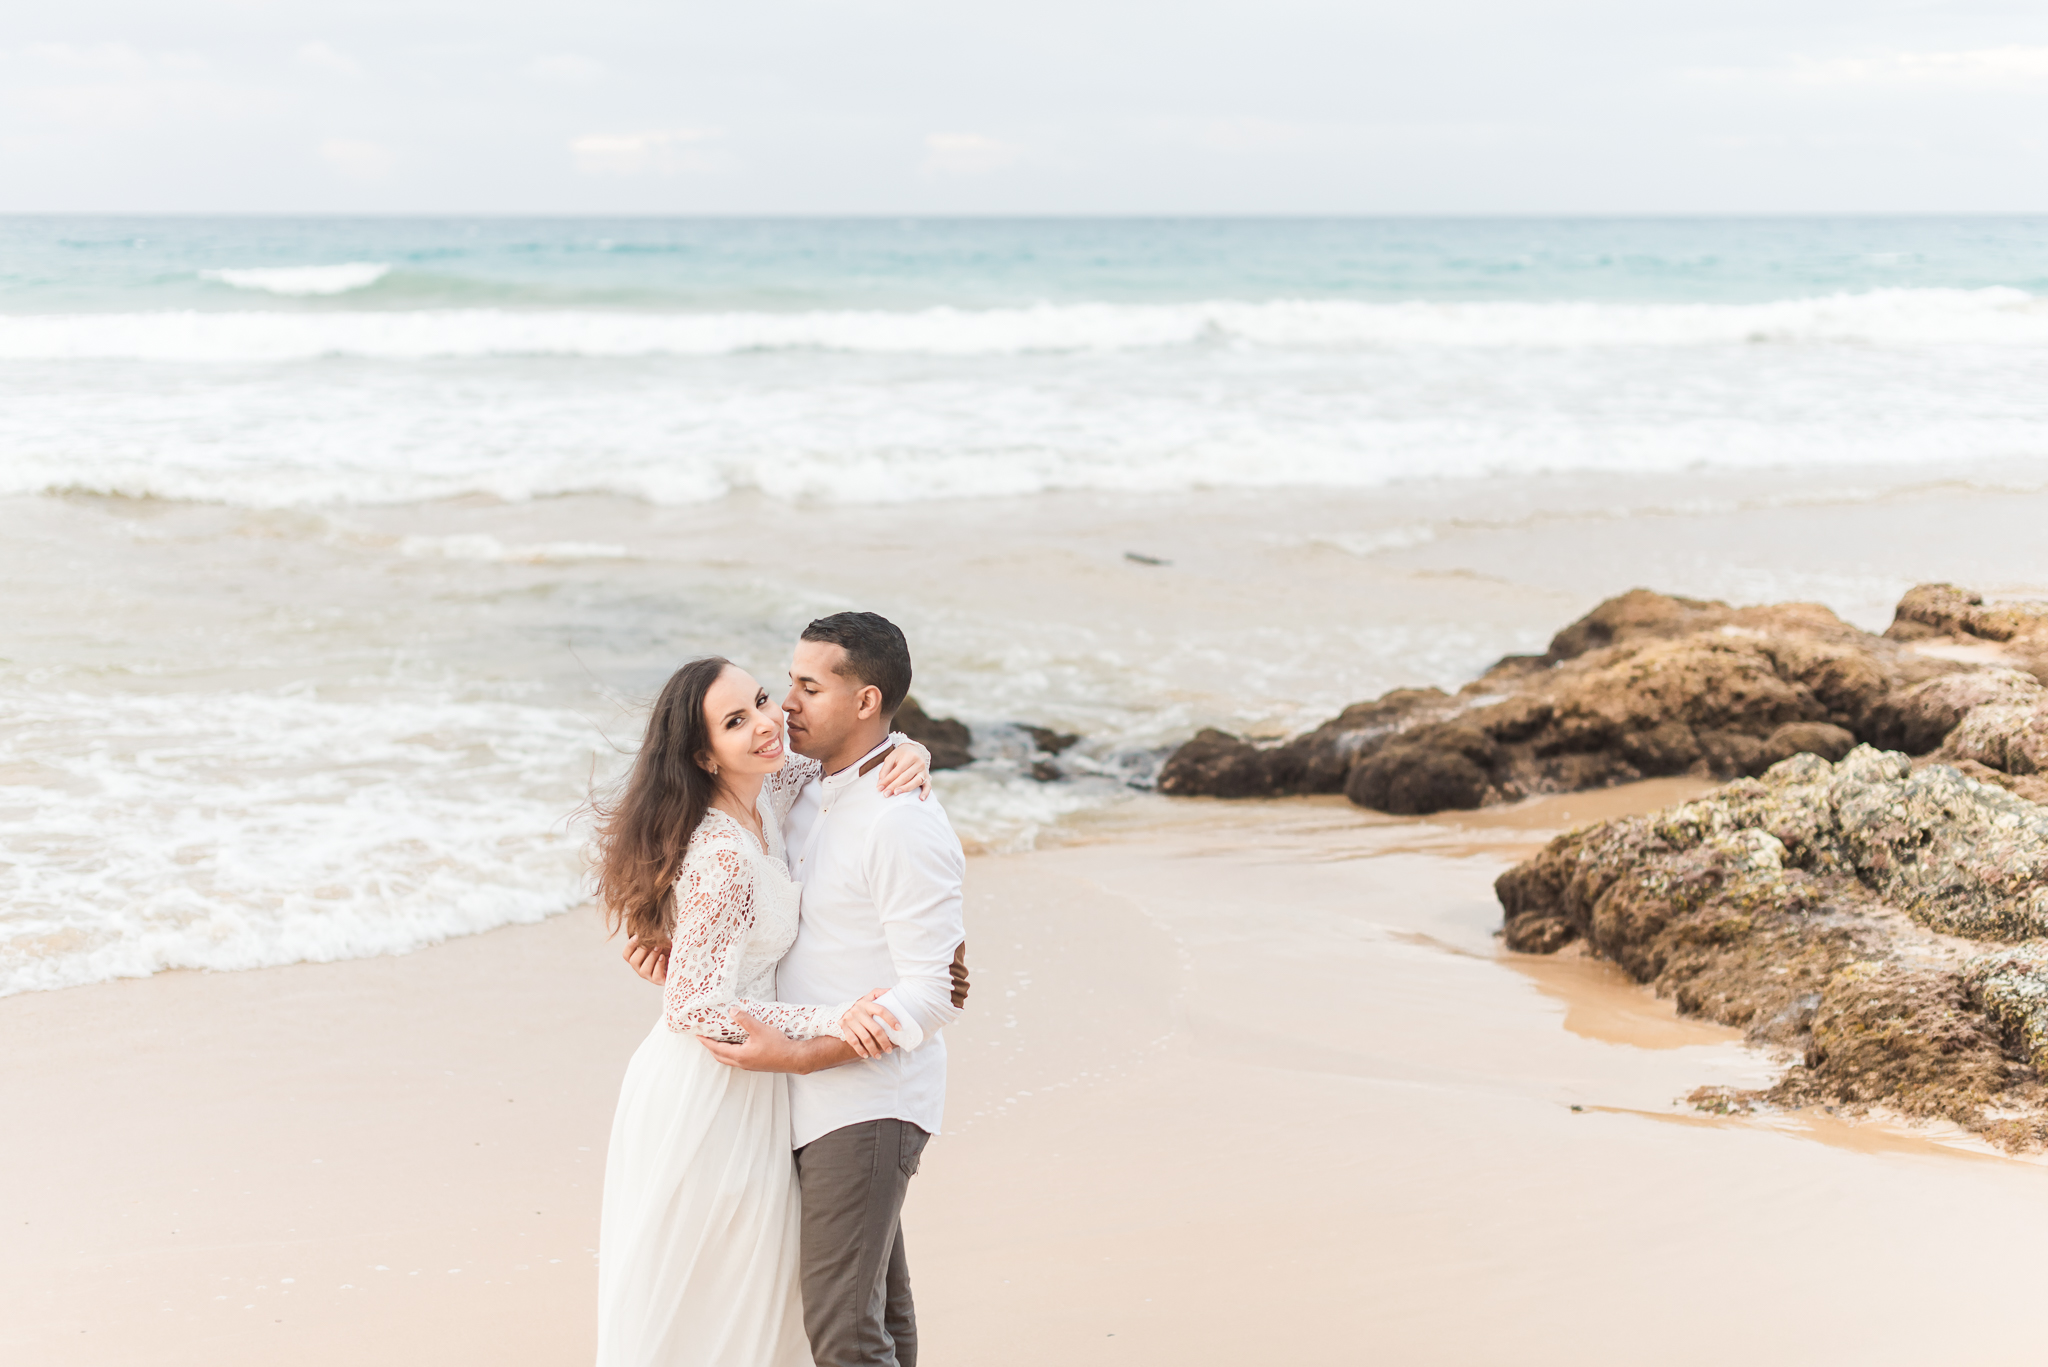 San Juan Destination Wedding Photographers Beach Wedding in Luquillo Puerto Rico-55.jpg